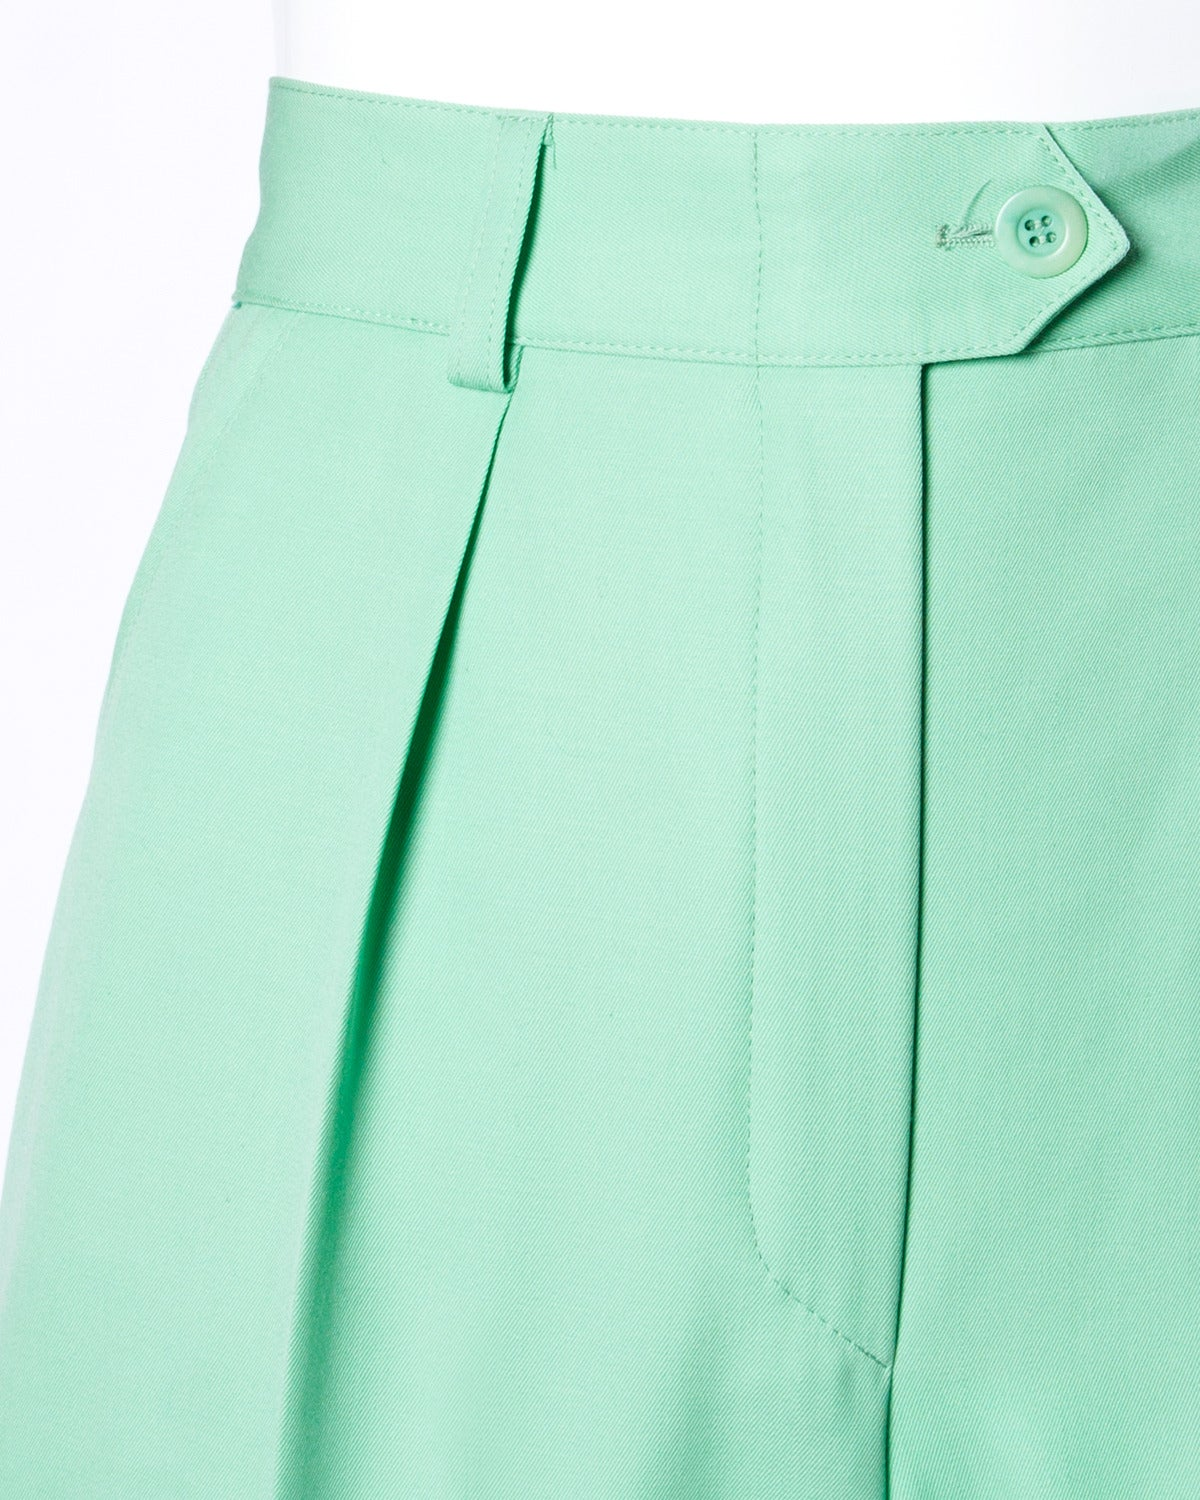 Escada Vintage 1990s 90s Mint Green High Waisted Wool Trousers In Excellent Condition For Sale In Sparks, NV